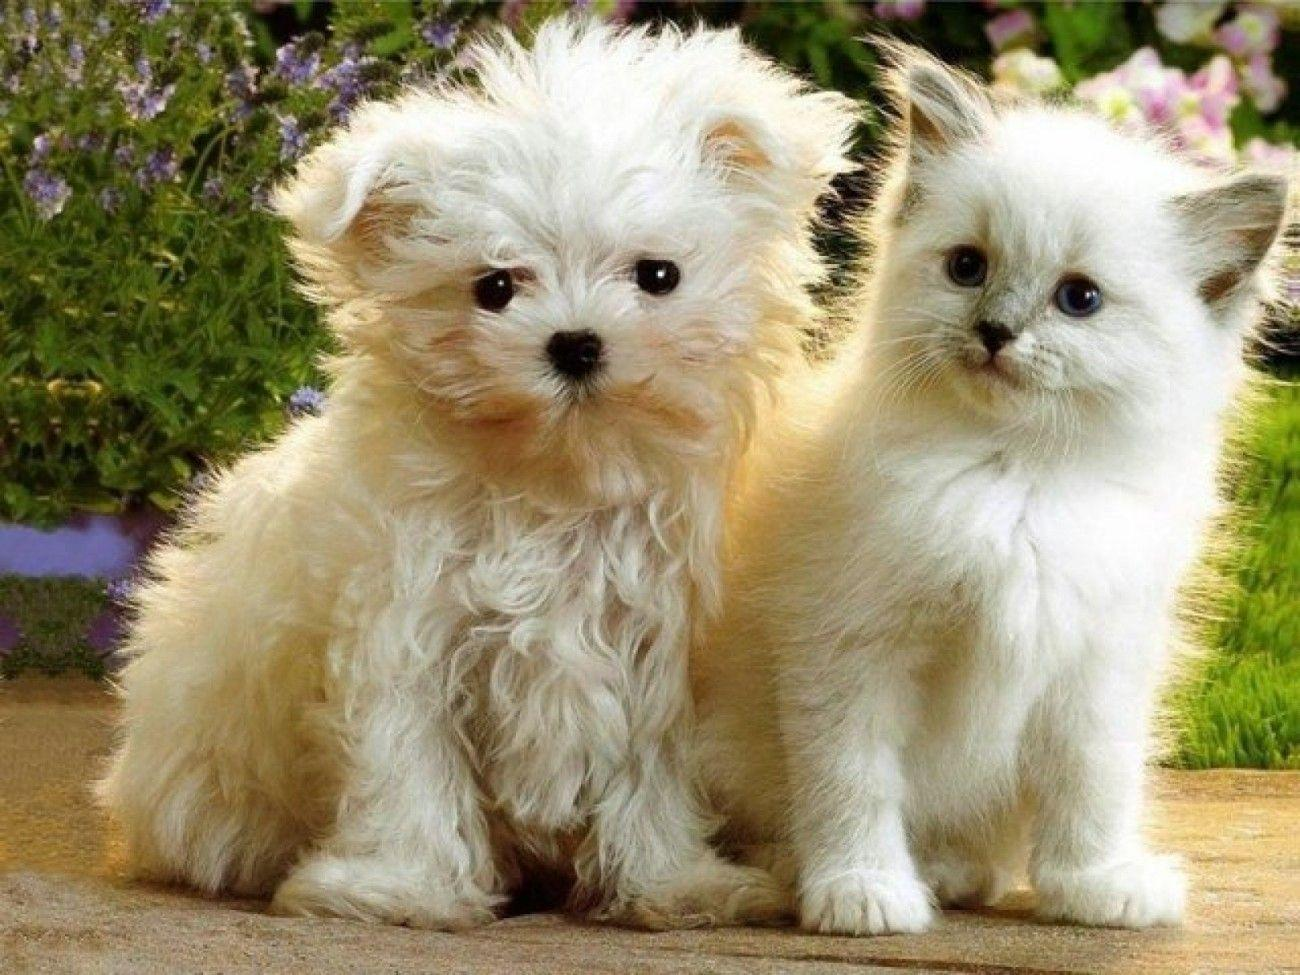 Adorable Puppies And Kittens Image & Pictures